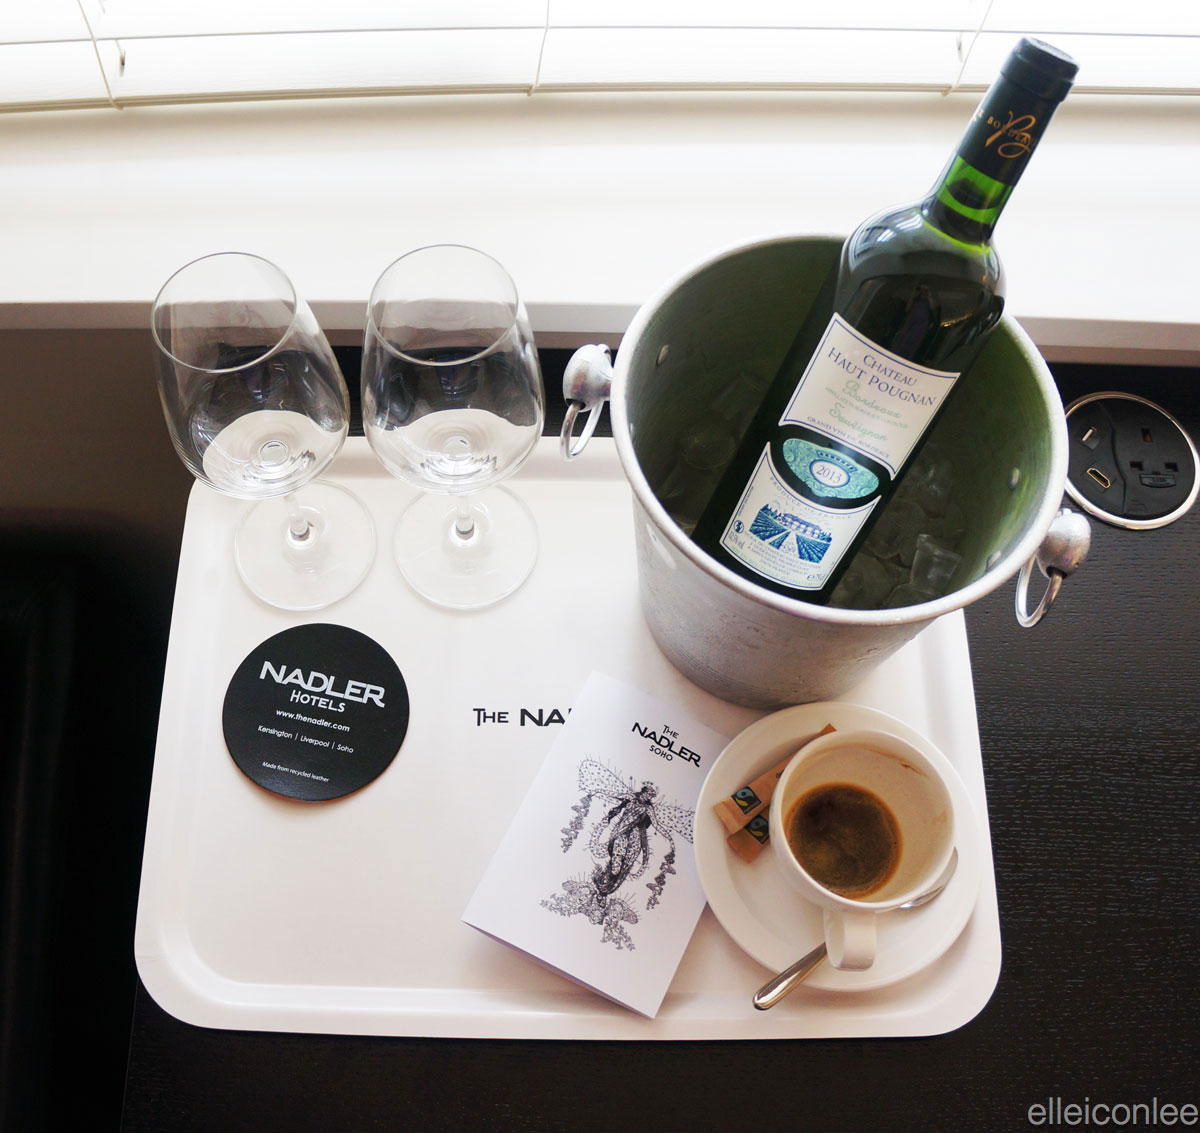 nadler_soho_london_boutique_hotel_review_experience_2014_22